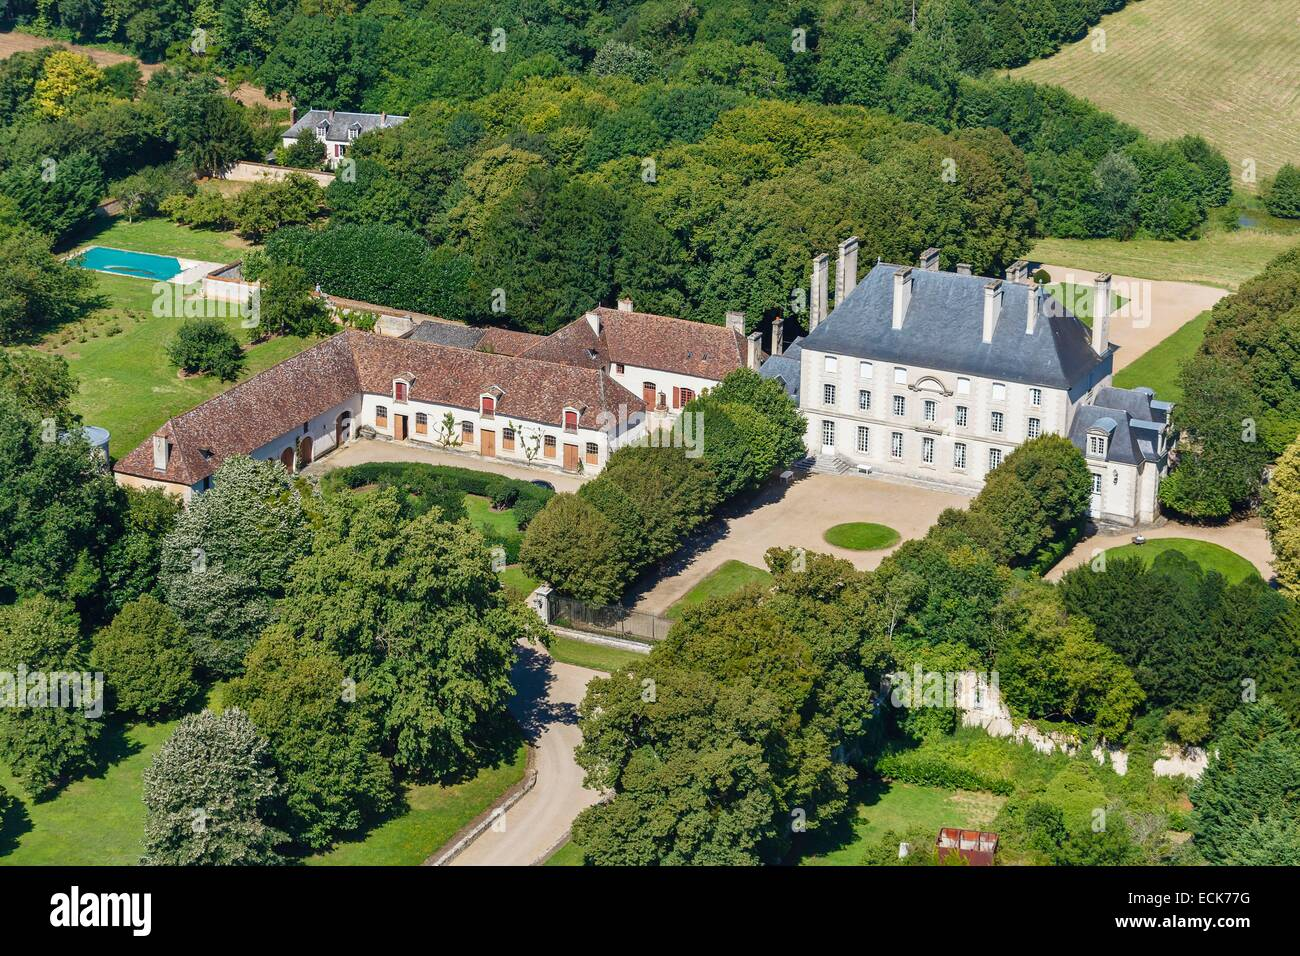 France, Vienne, Lhommaize, La Forge castle (aerial view) - Stock Image